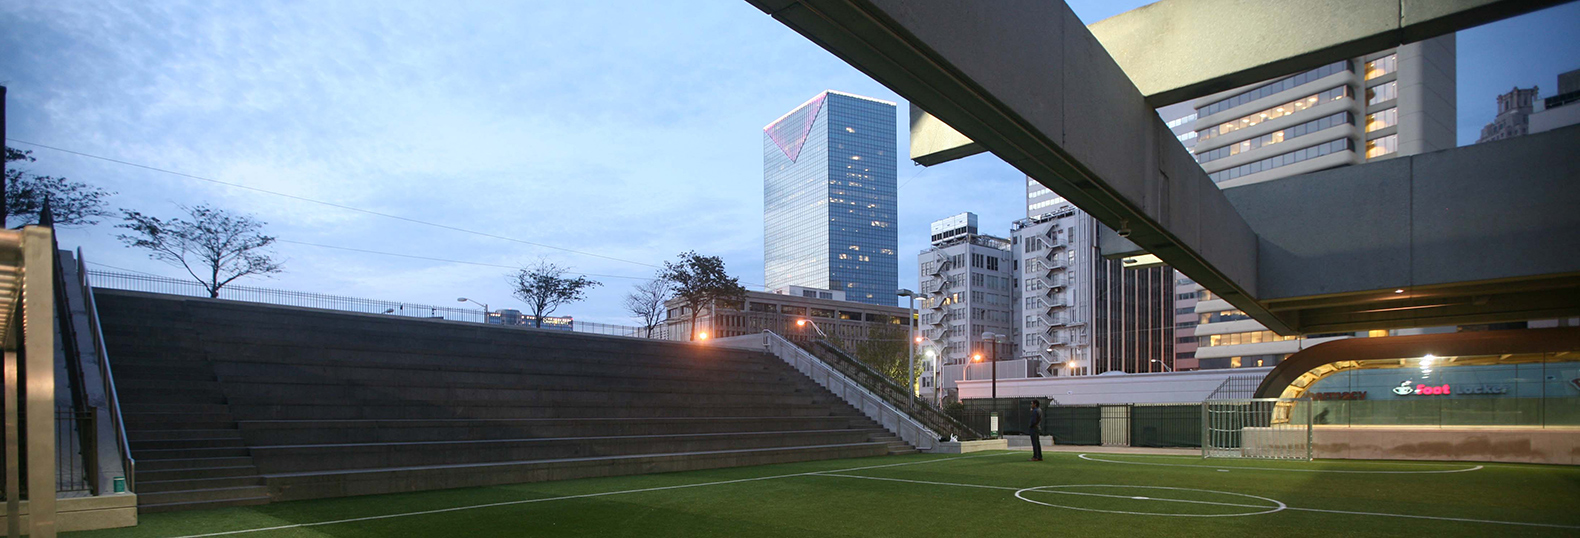 Atlanta unveils first ever soccer field inside a transit station